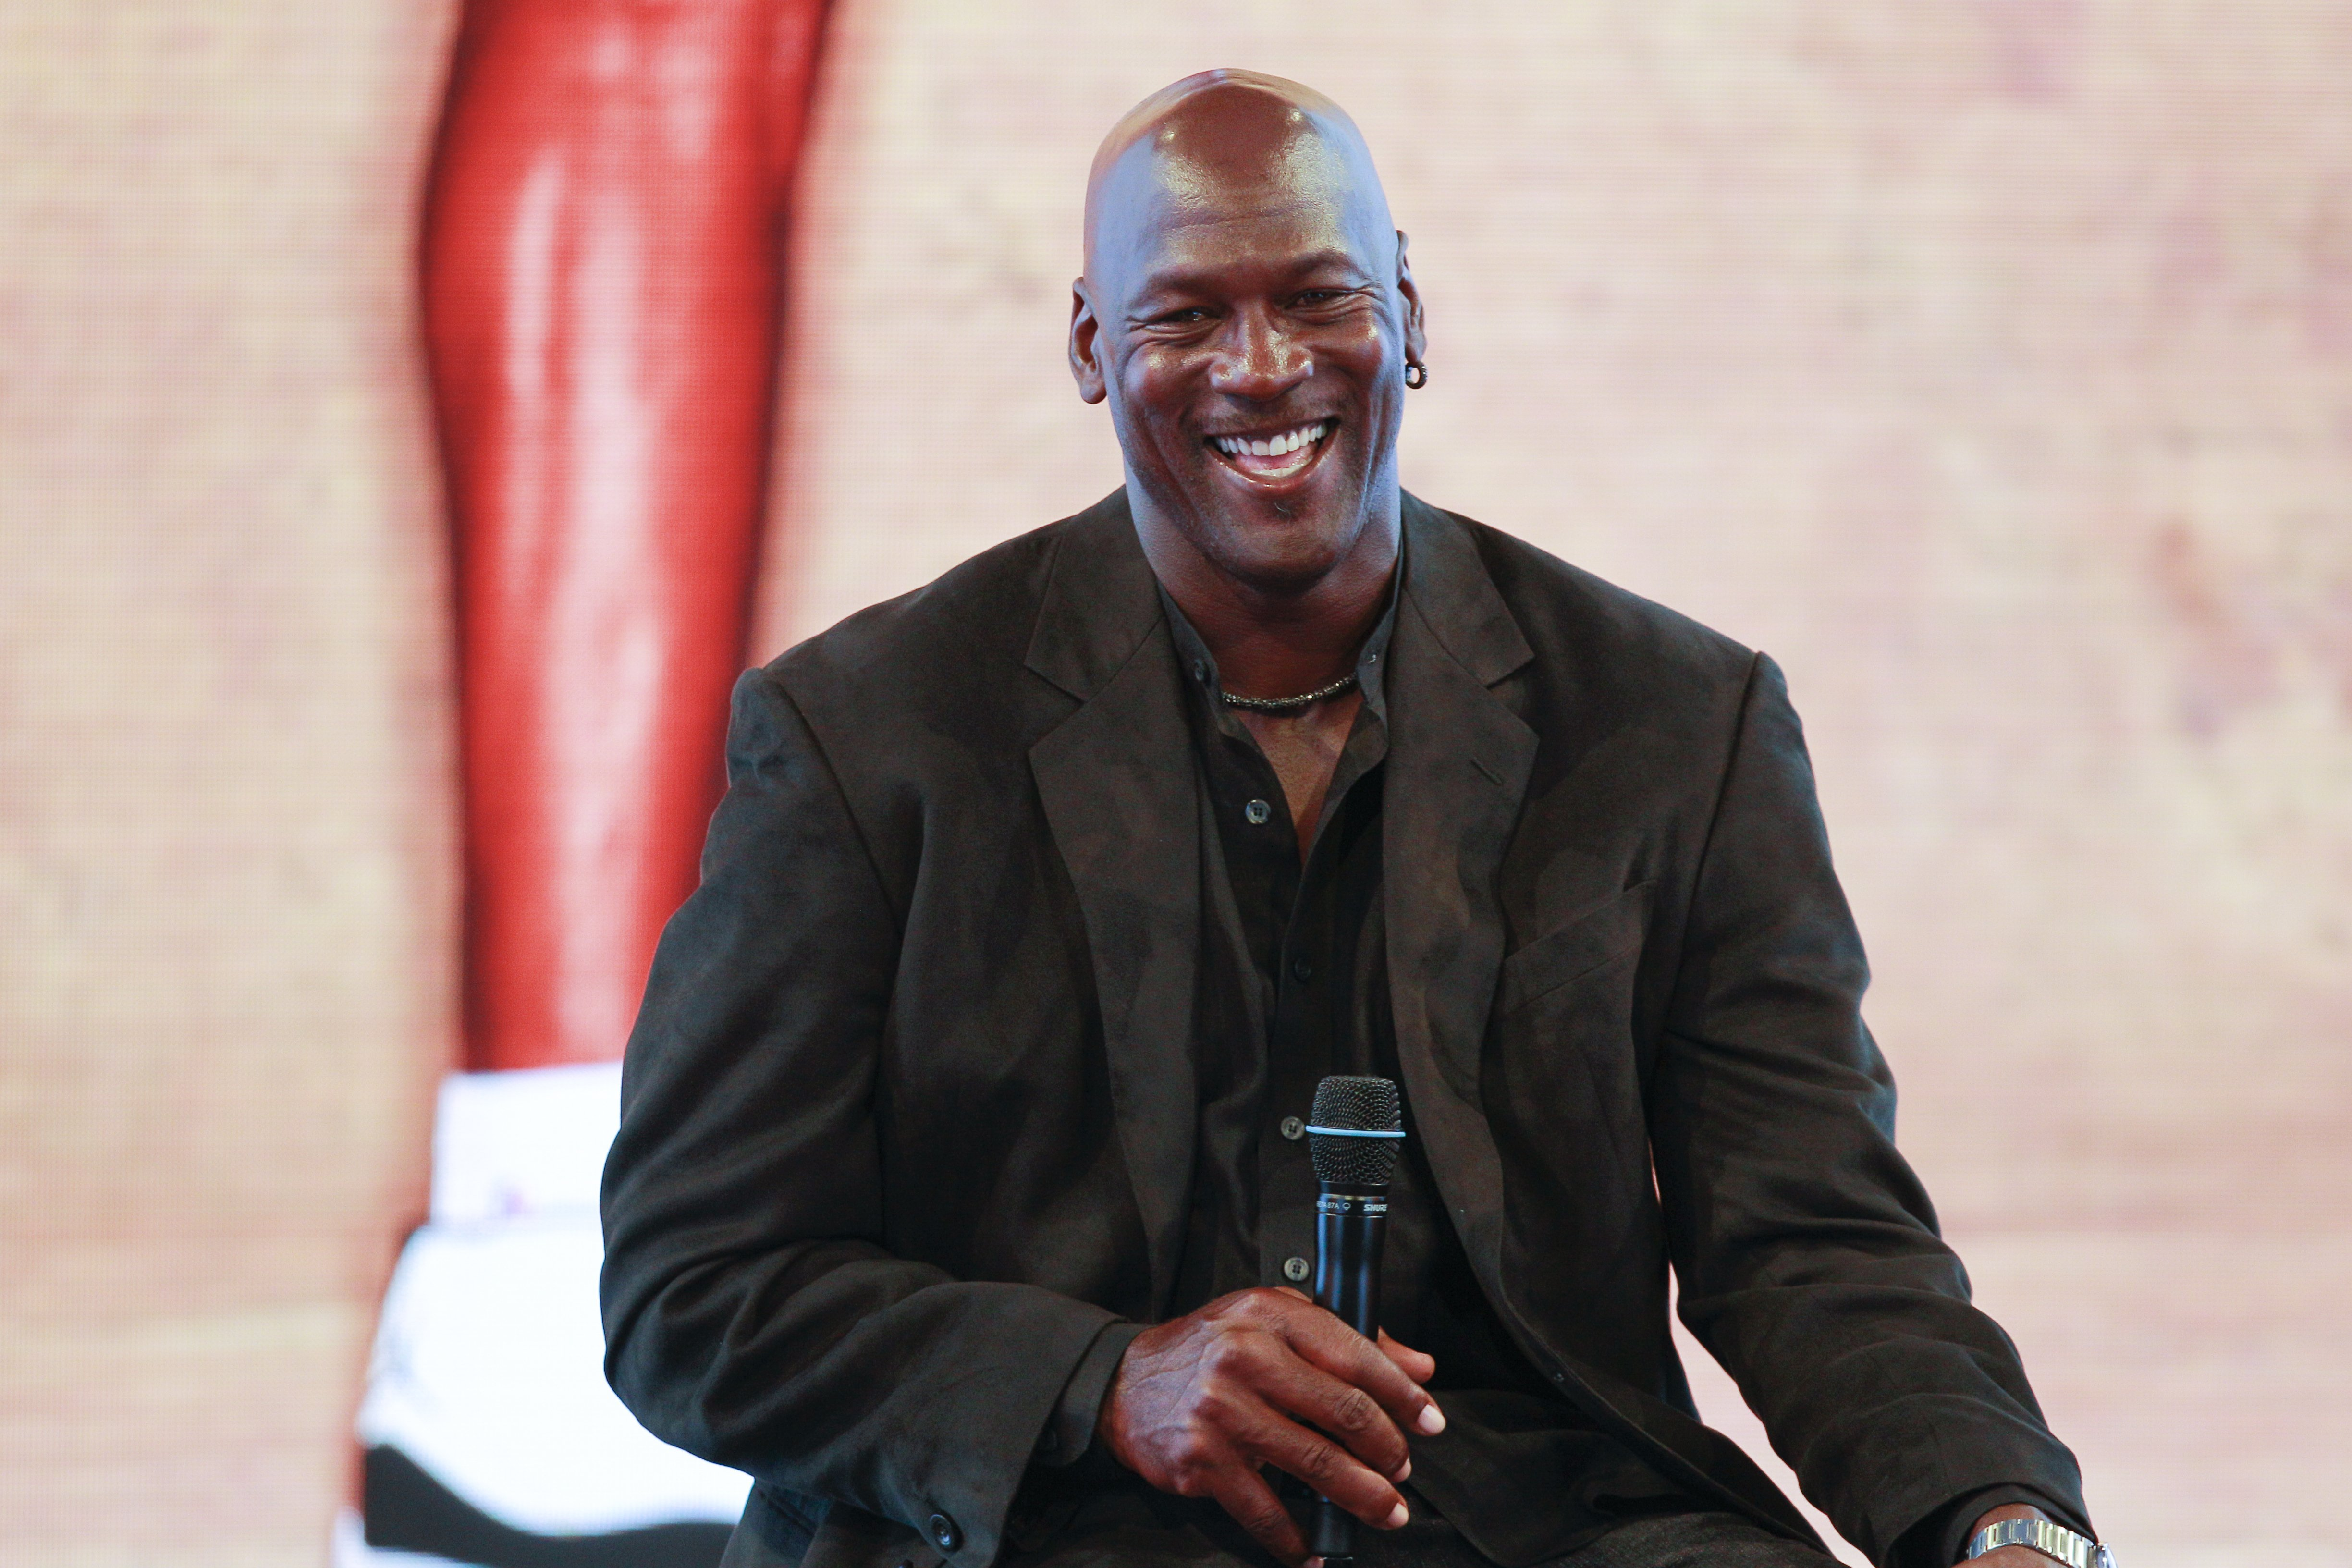 Michael Jordan attends a press conference for the celebration of the 30th anniversary of the Air Jordan Shoe during the 'Palais 23' interactive exhibition dedicated to Michael Jordan at Palais de Tokyo in Paris on June 12, 2015 | Photo: GettyImages